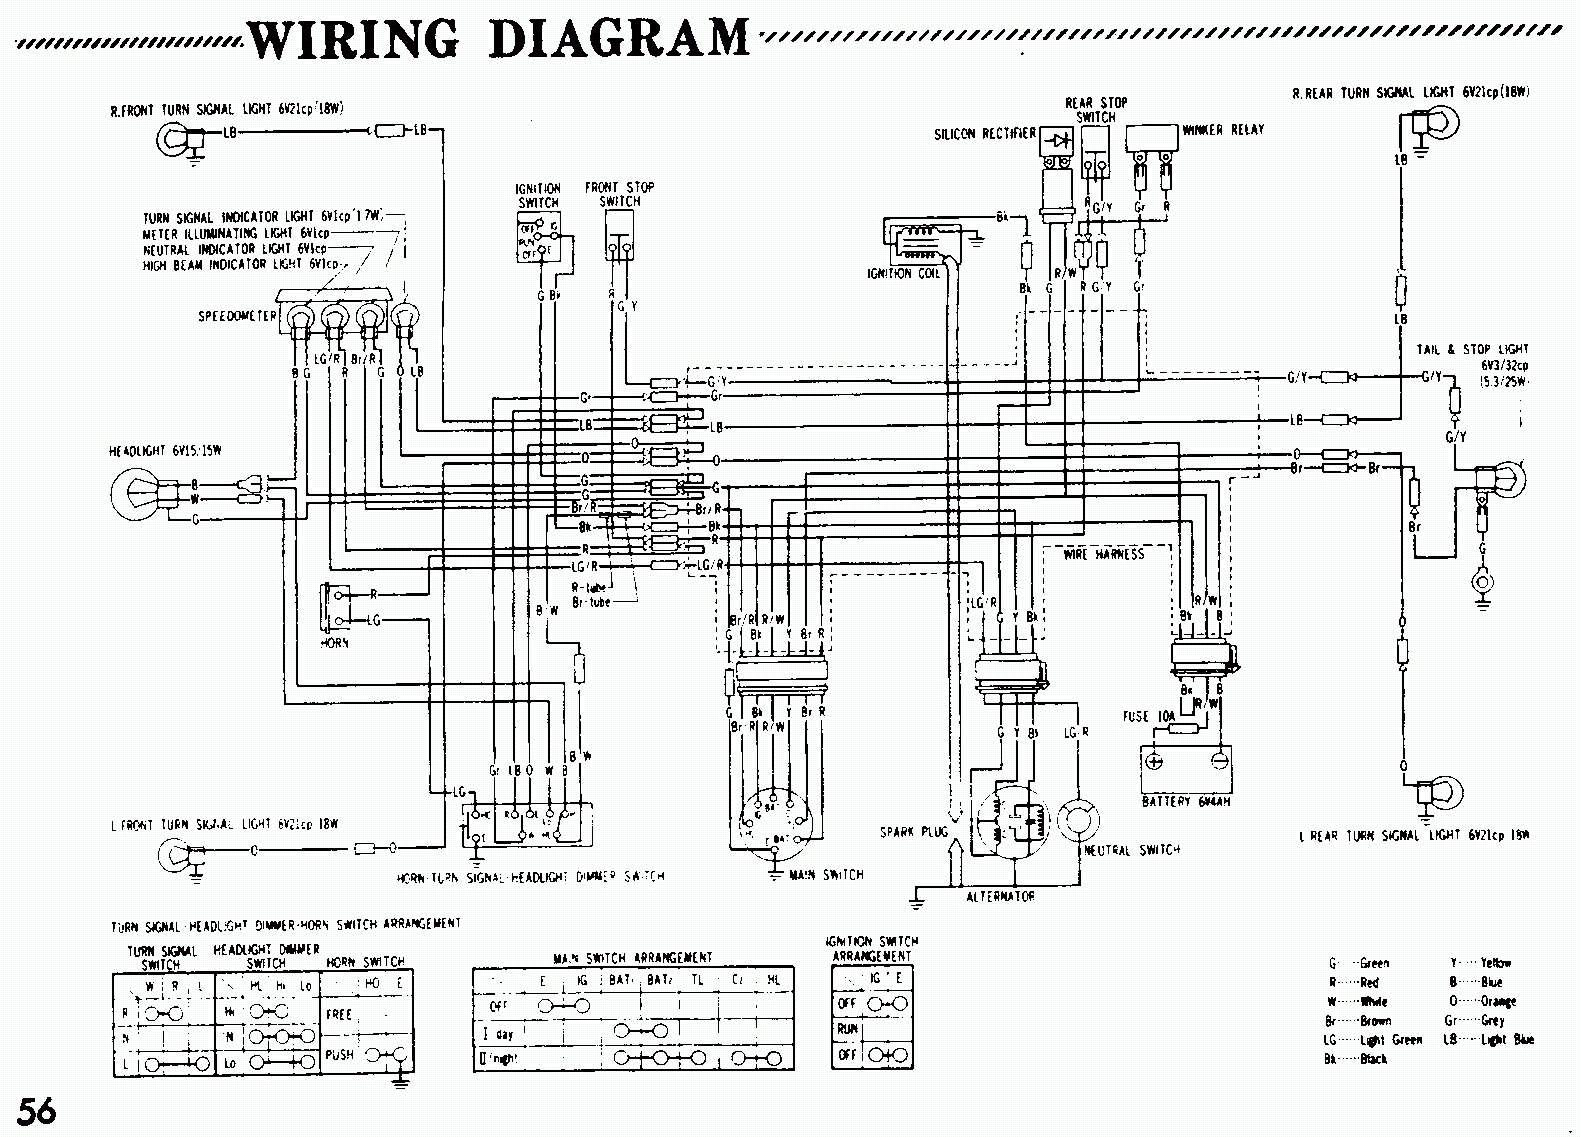 honda ct70 wiring diagram tbolt usa tech database - tbolt usa, llc honda ct70 wiring diagram #1